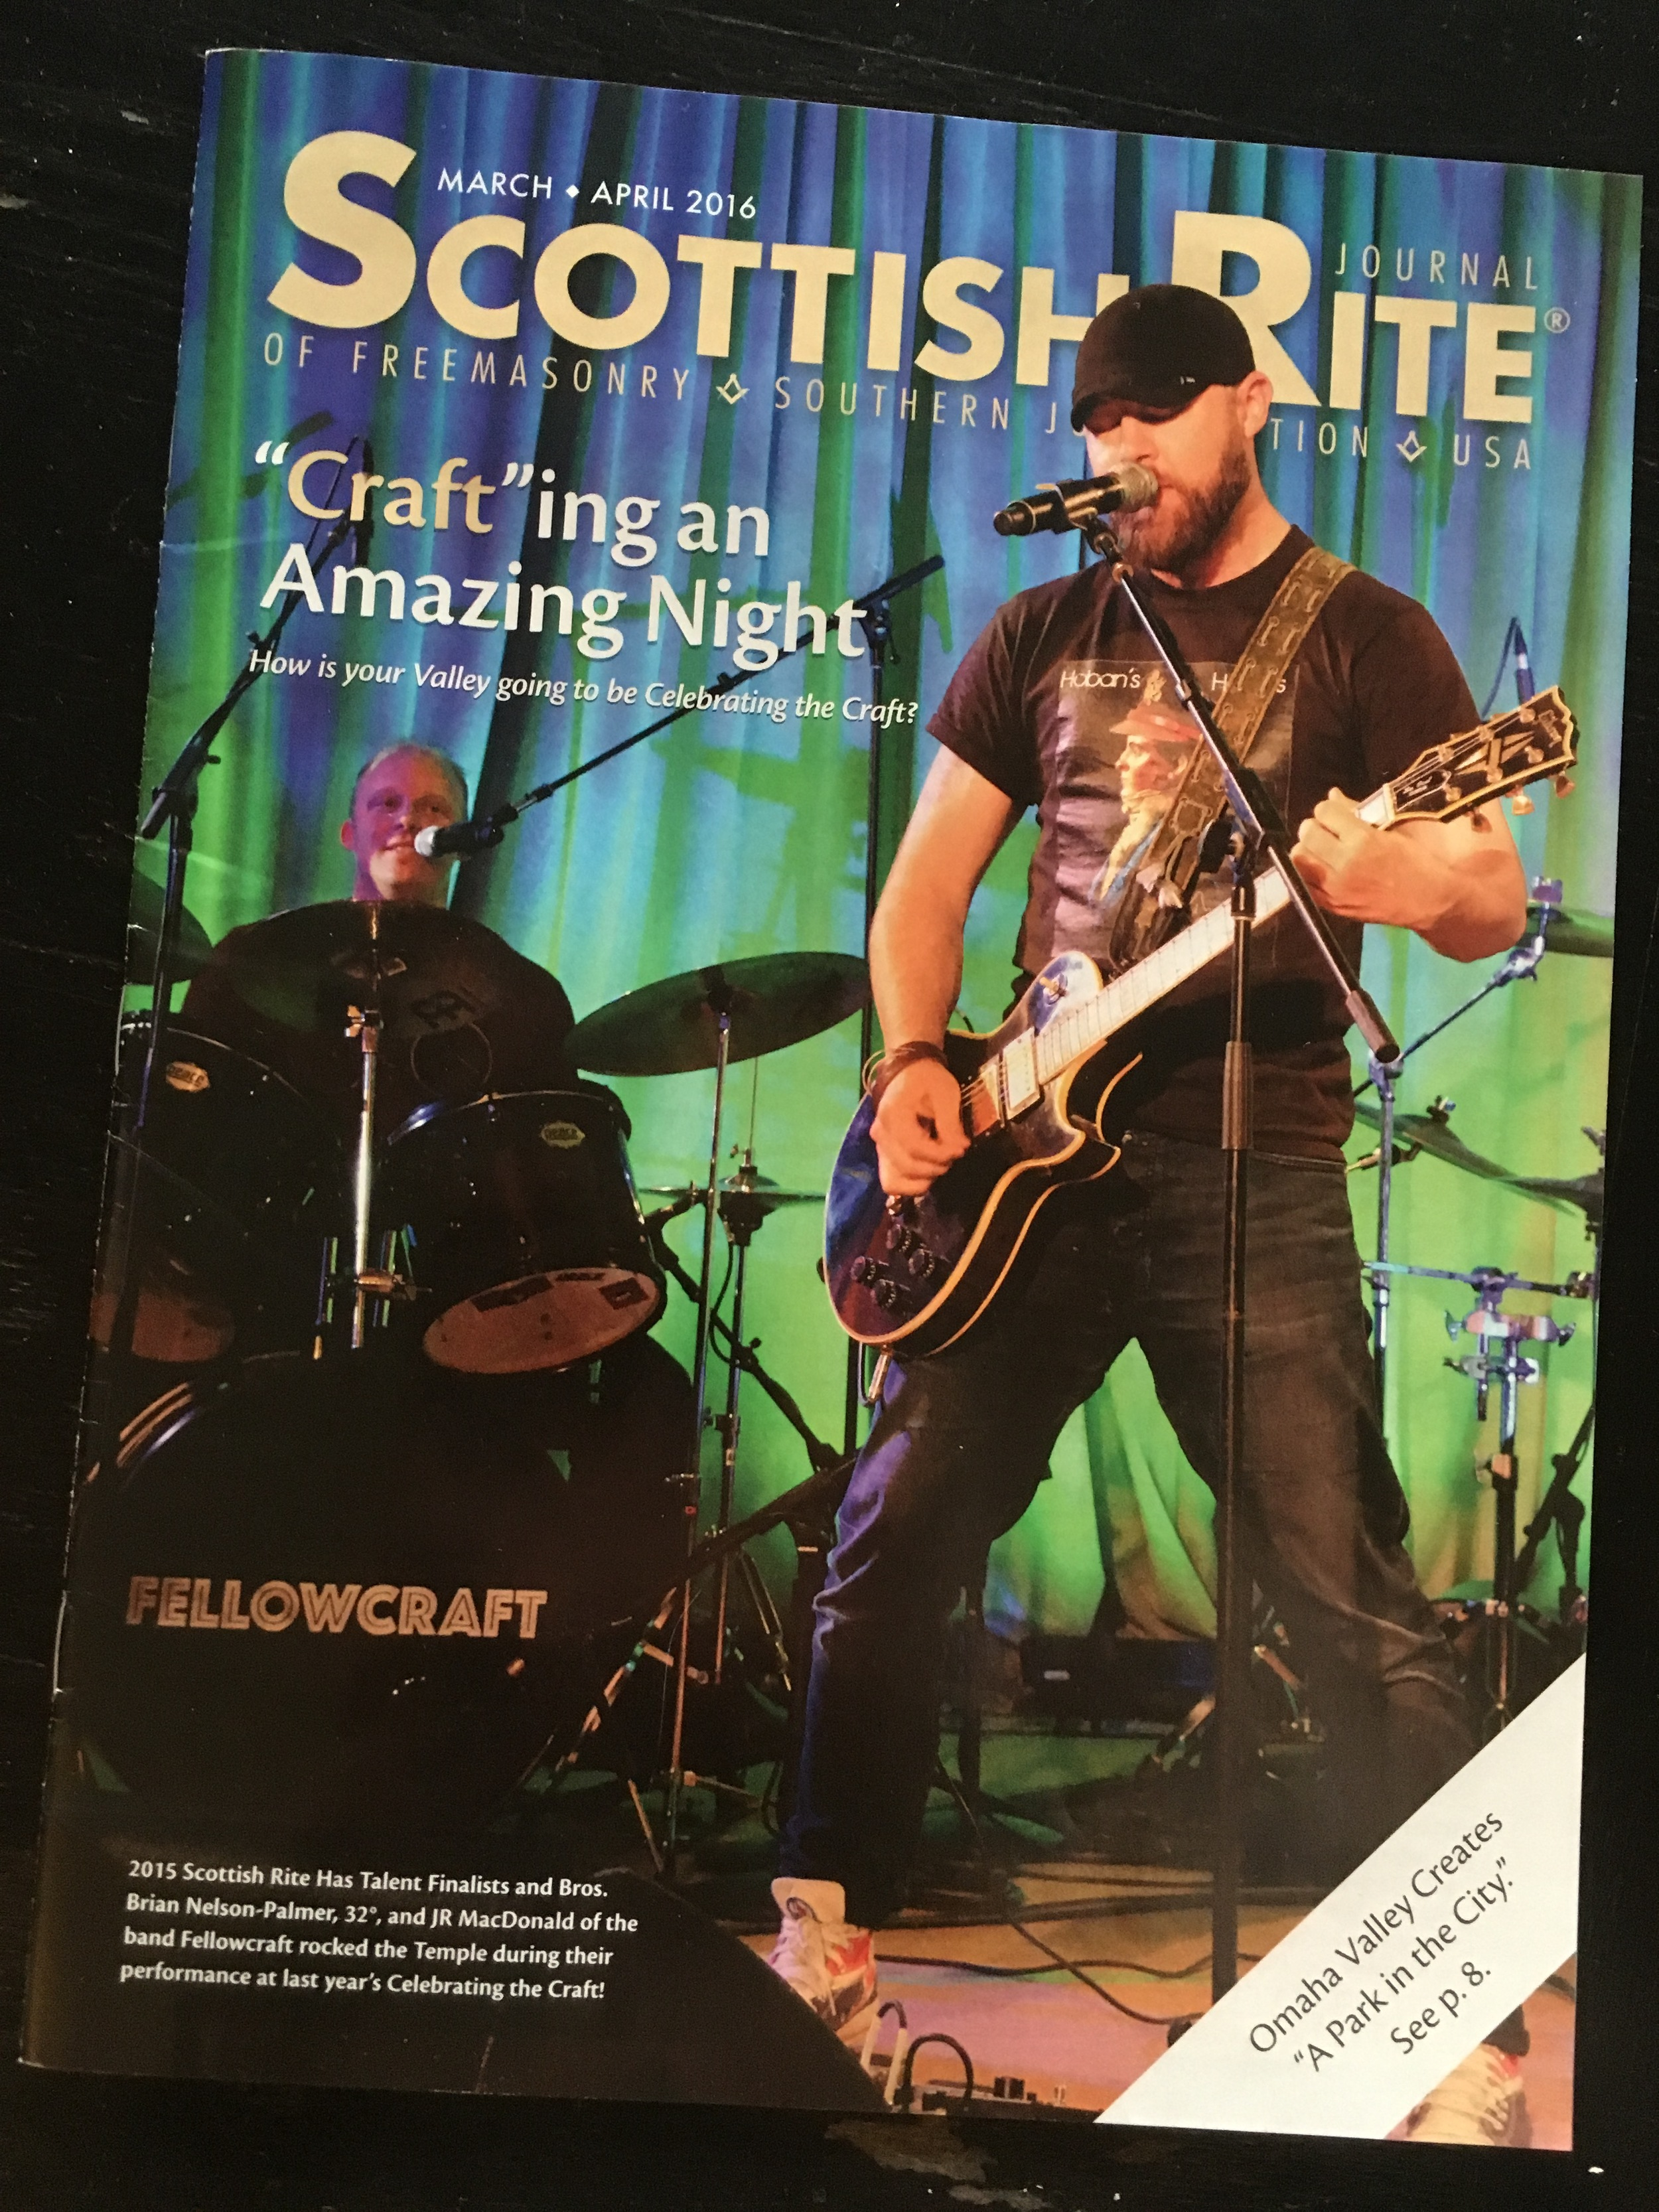 Fellowcraft - Magazine Cover - Scottish Rite Journal